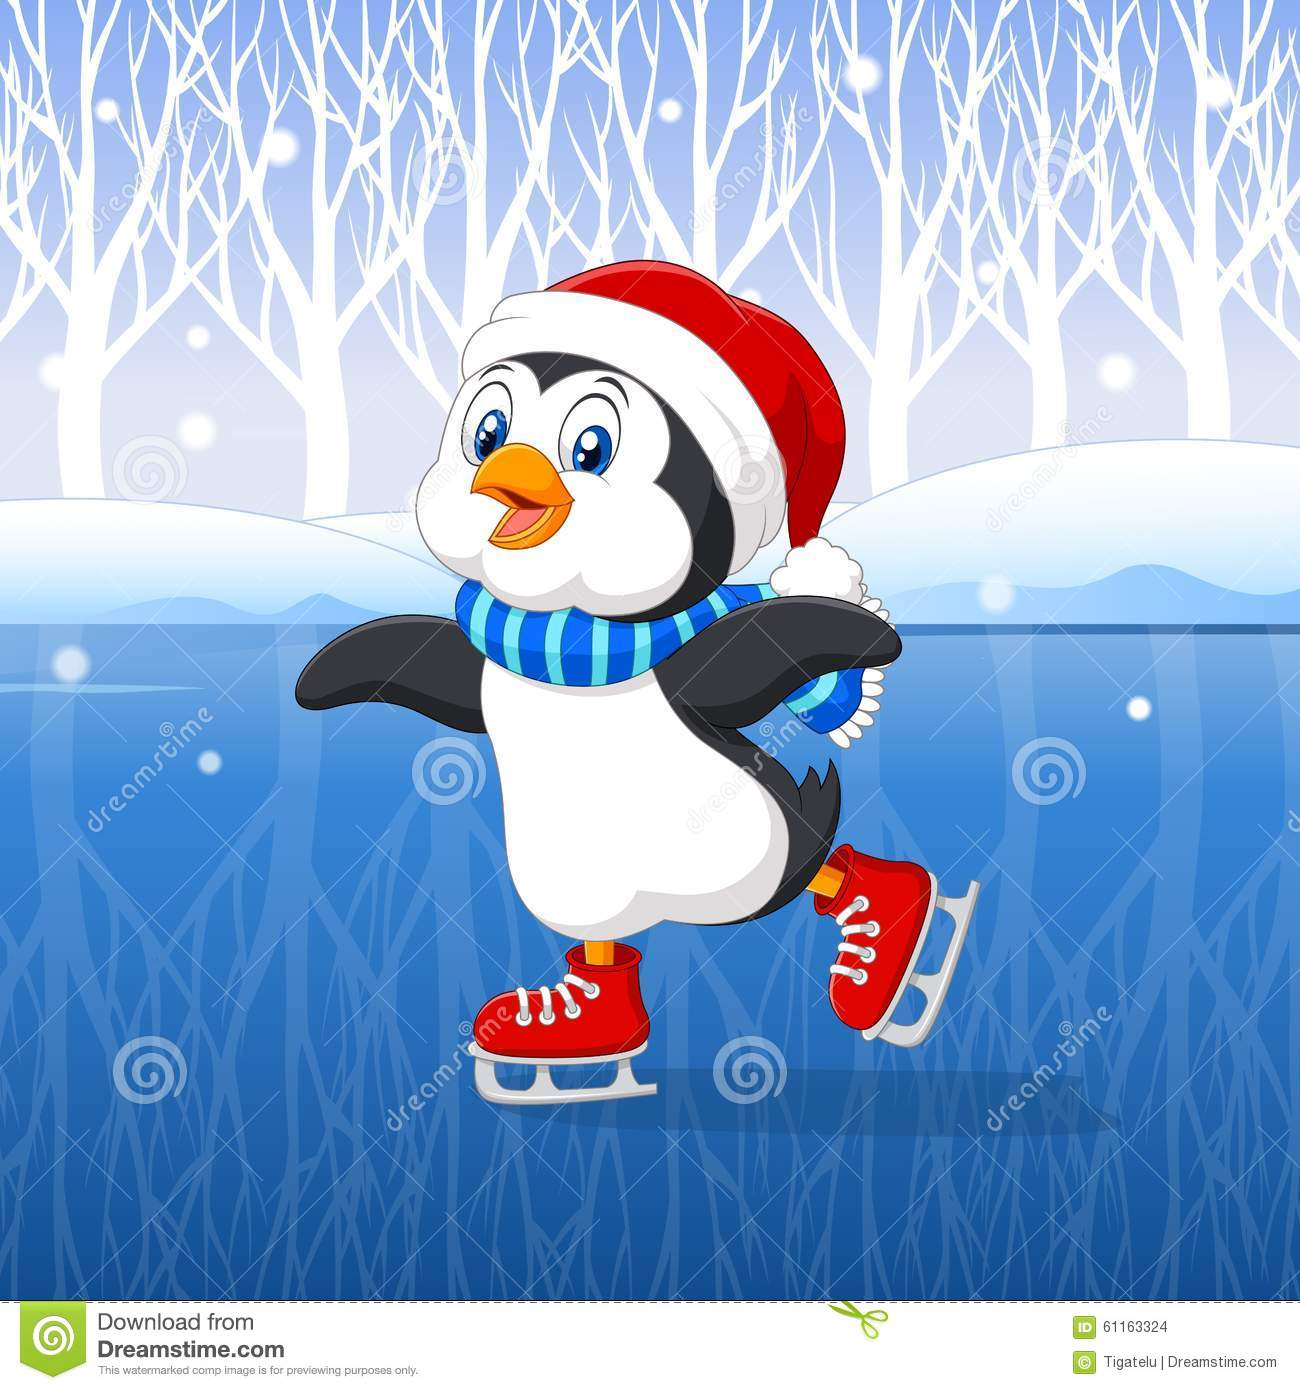 Cute Cartoon Penguin Doing Ice Skating With Winter Background.